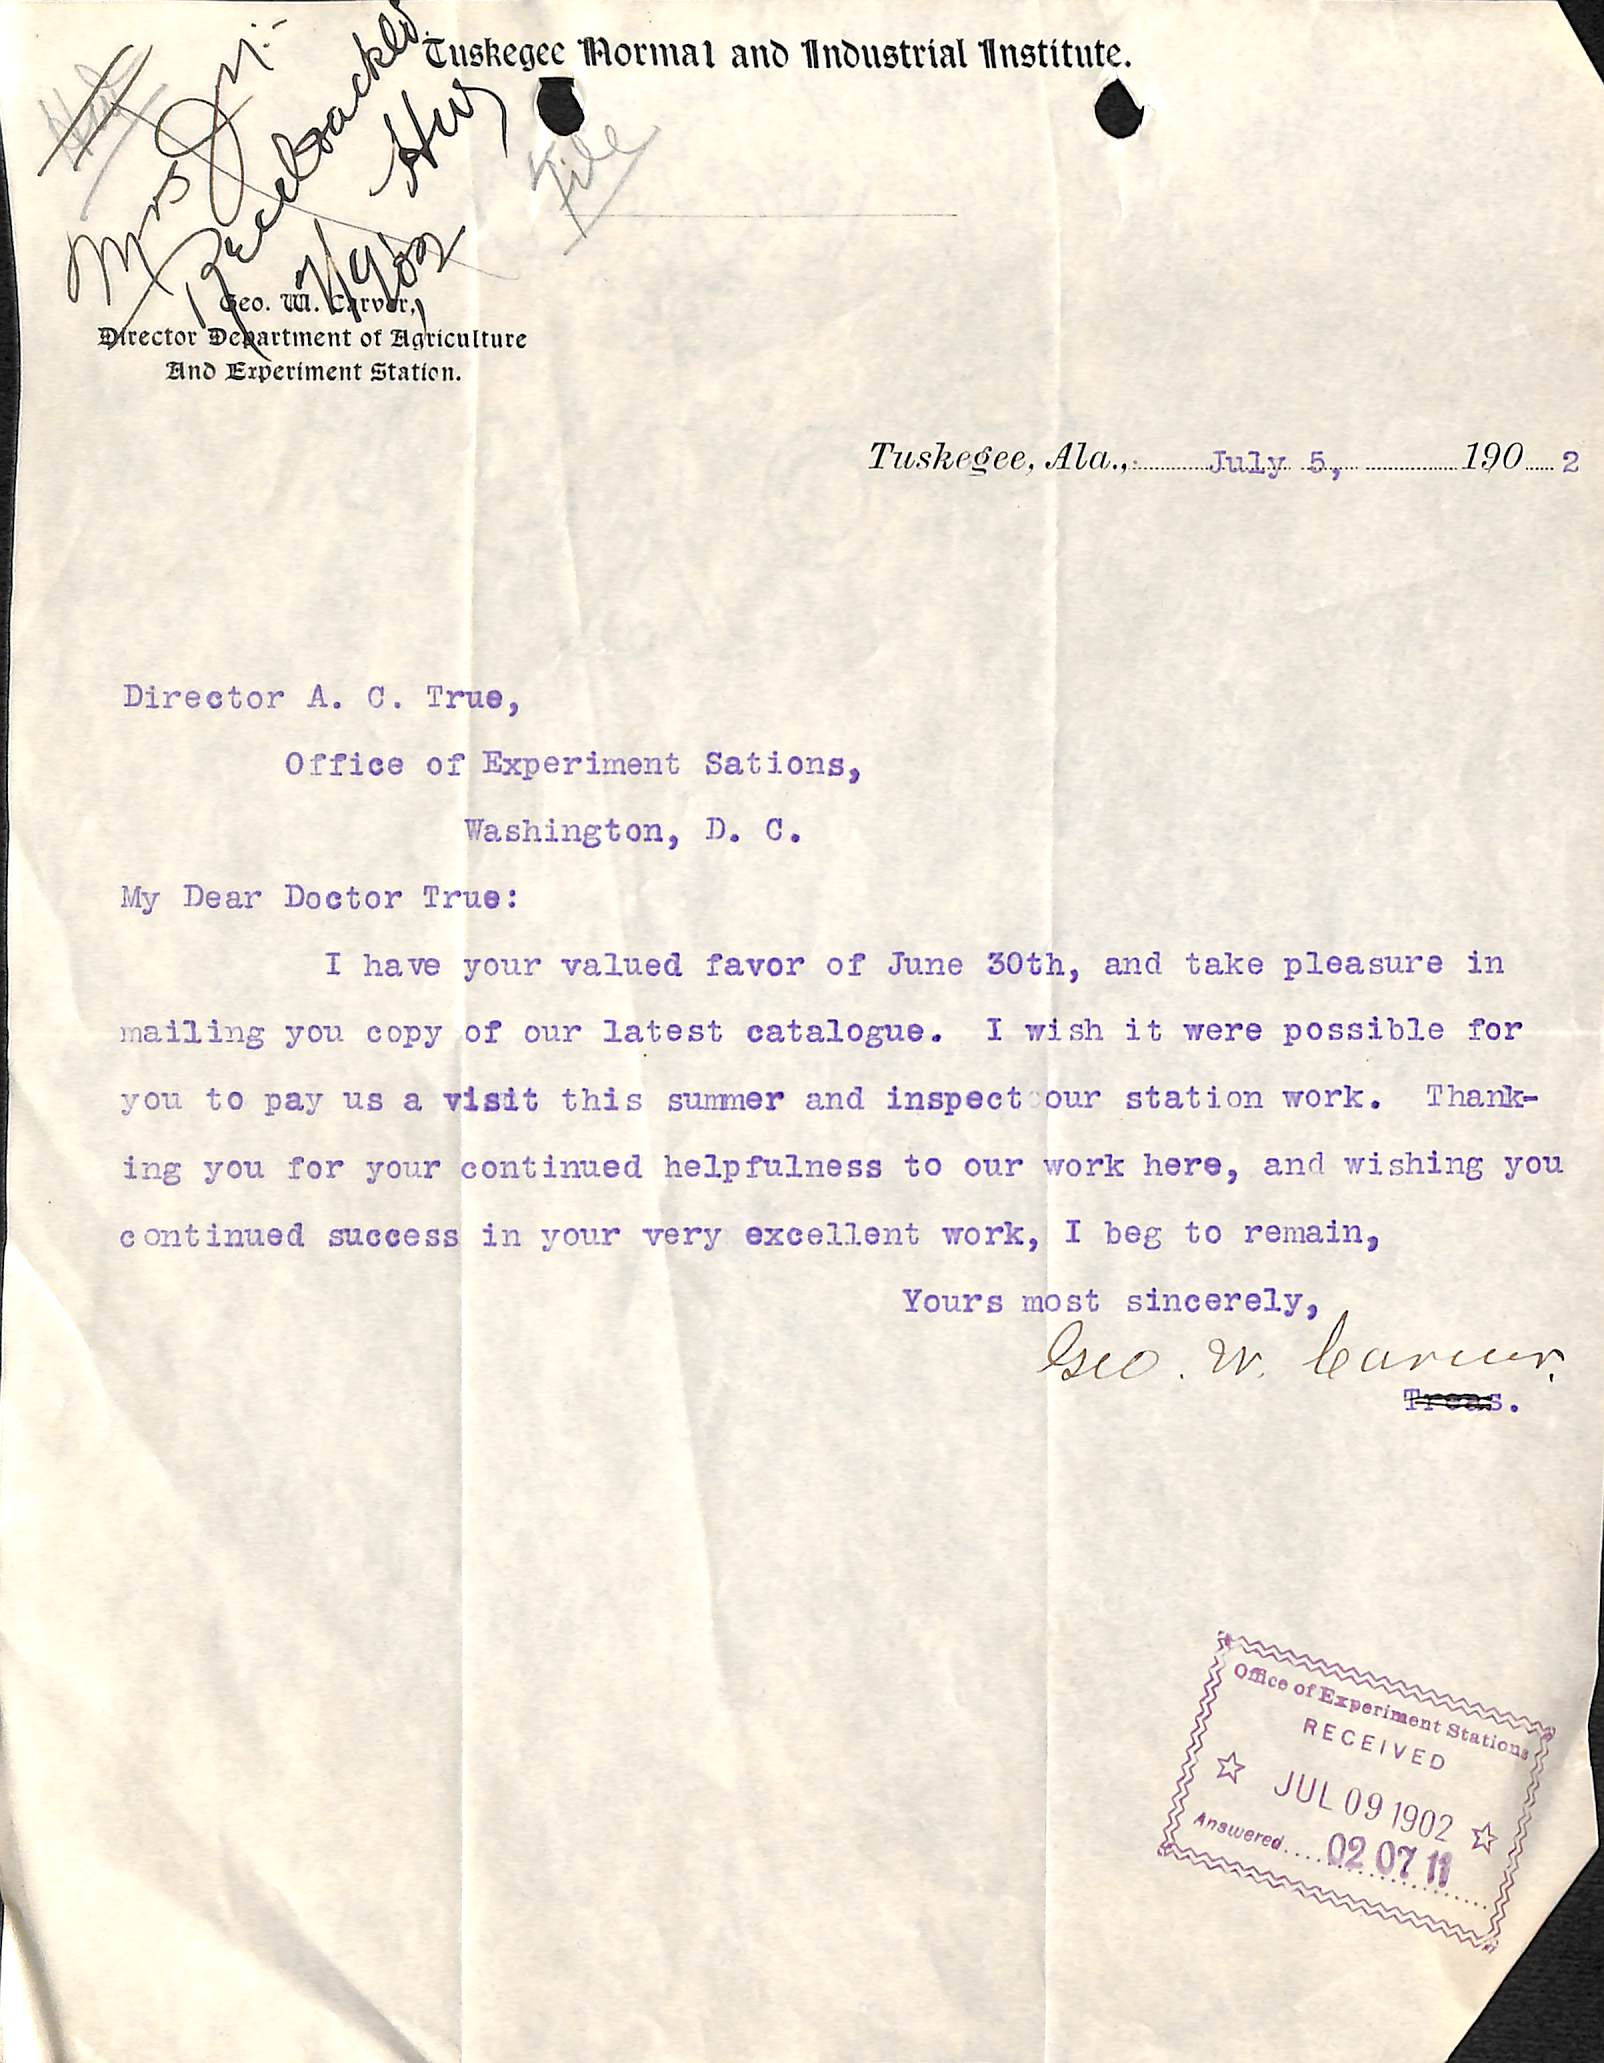 George Washington Carver And The Agricultural Experiment Station  Letter From George Washington Carver To A C True Dated July   Naid